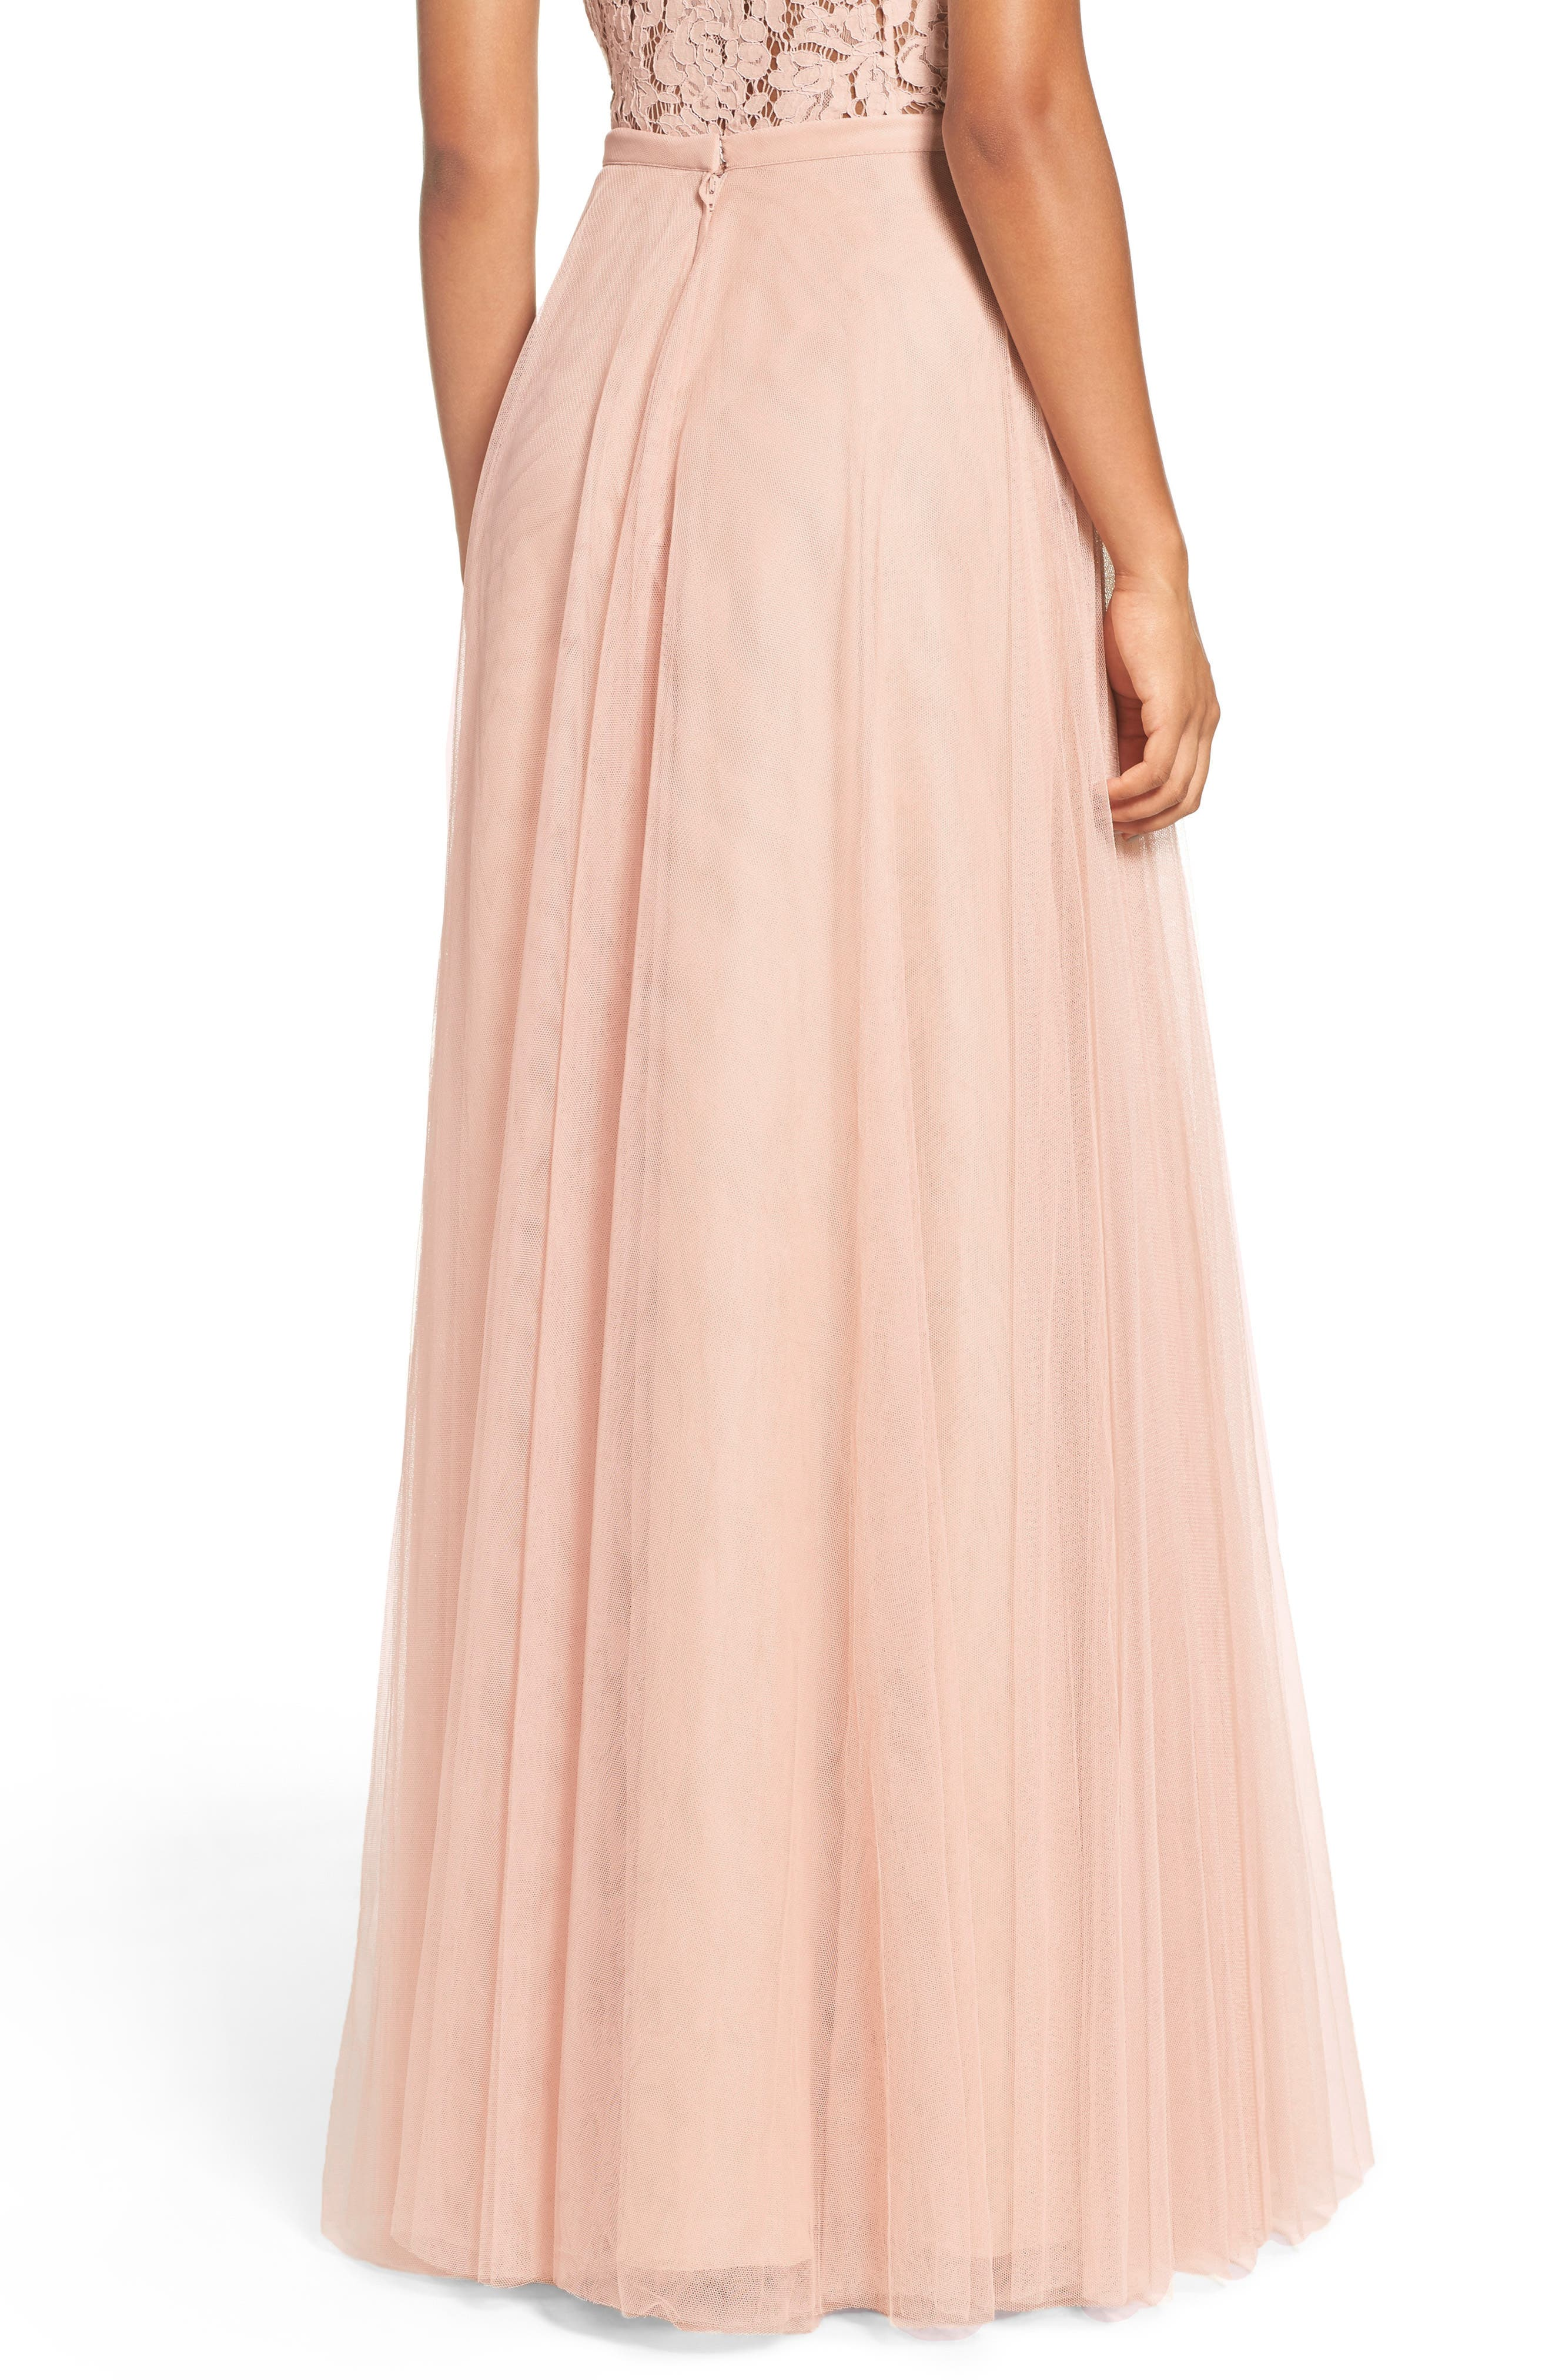 Winslow Long Tulle A-Line Skirt,                             Alternate thumbnail 3, color,                             CAMEO PINK